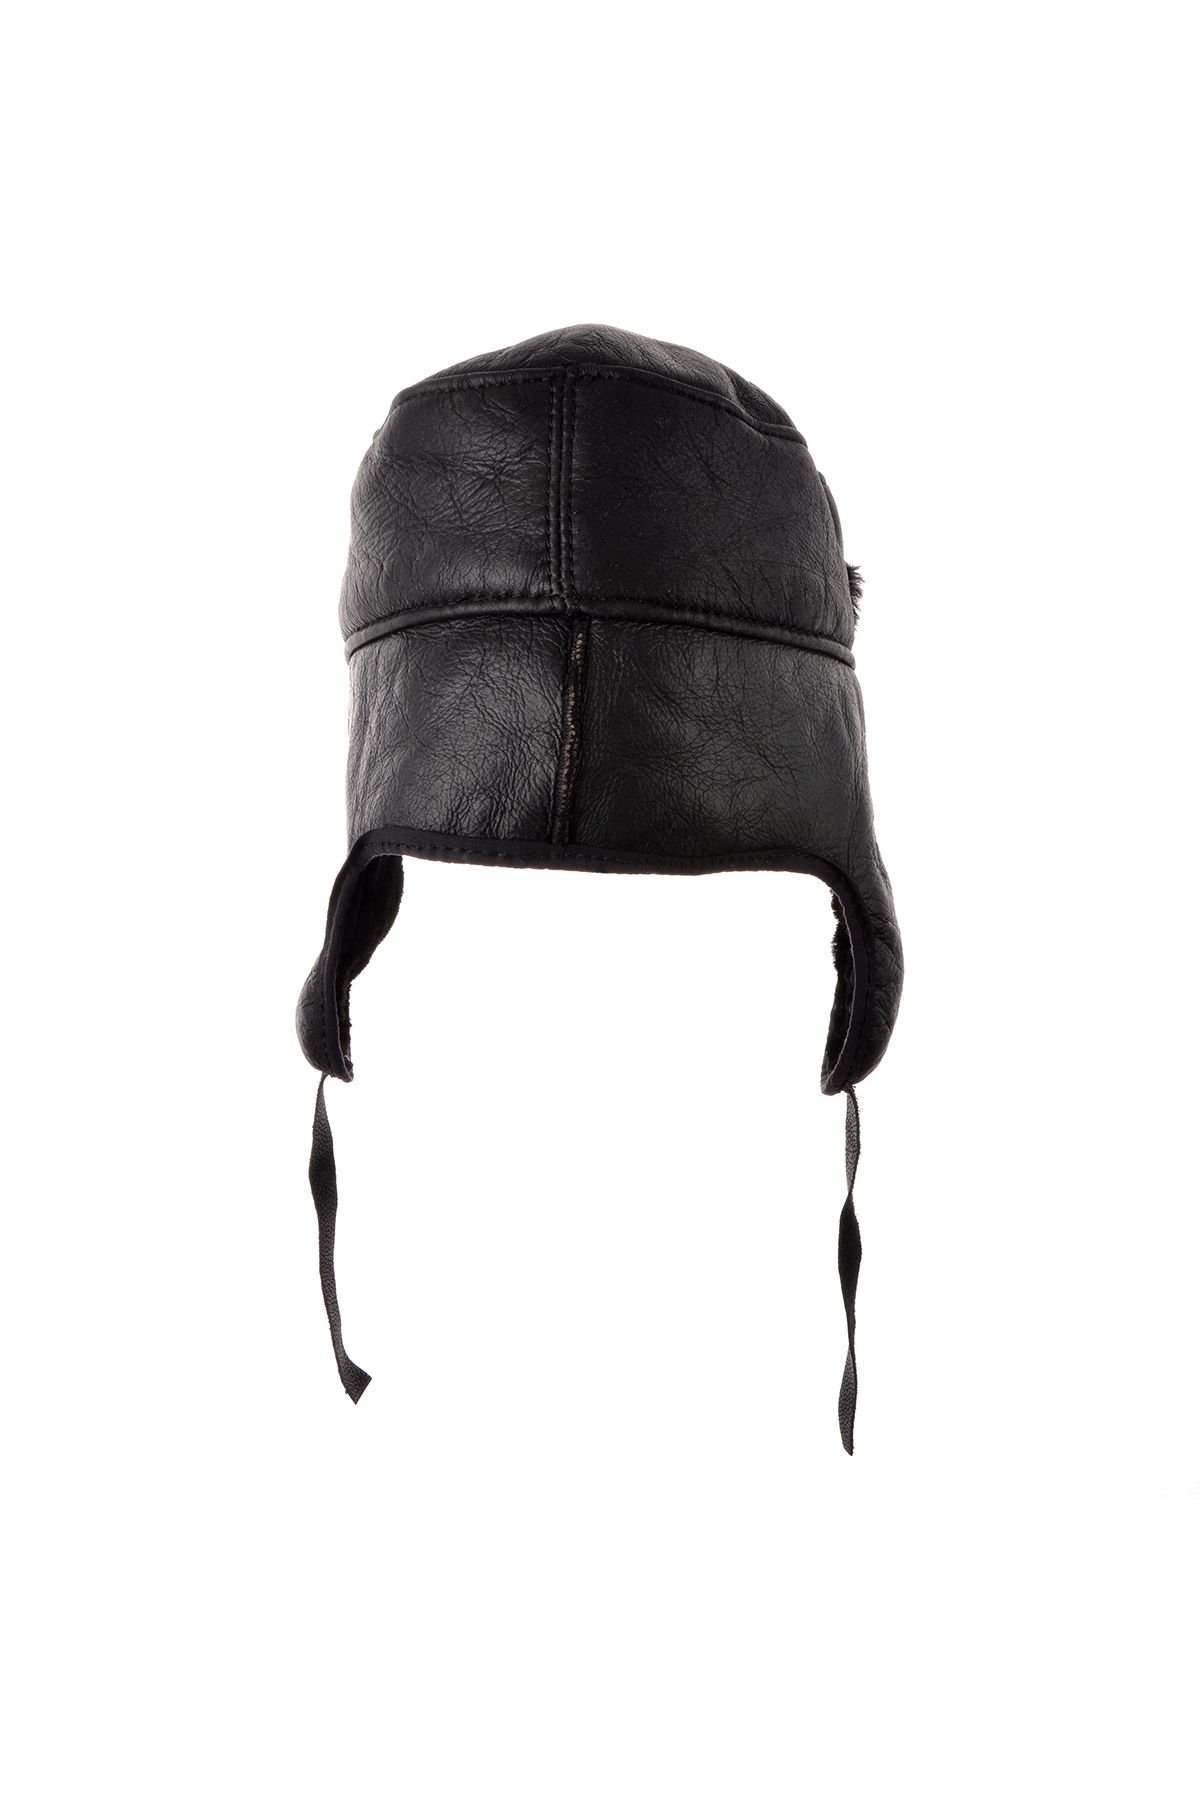 Pegia Ear-Flaps Hat From Genuine Leather And Fur Black